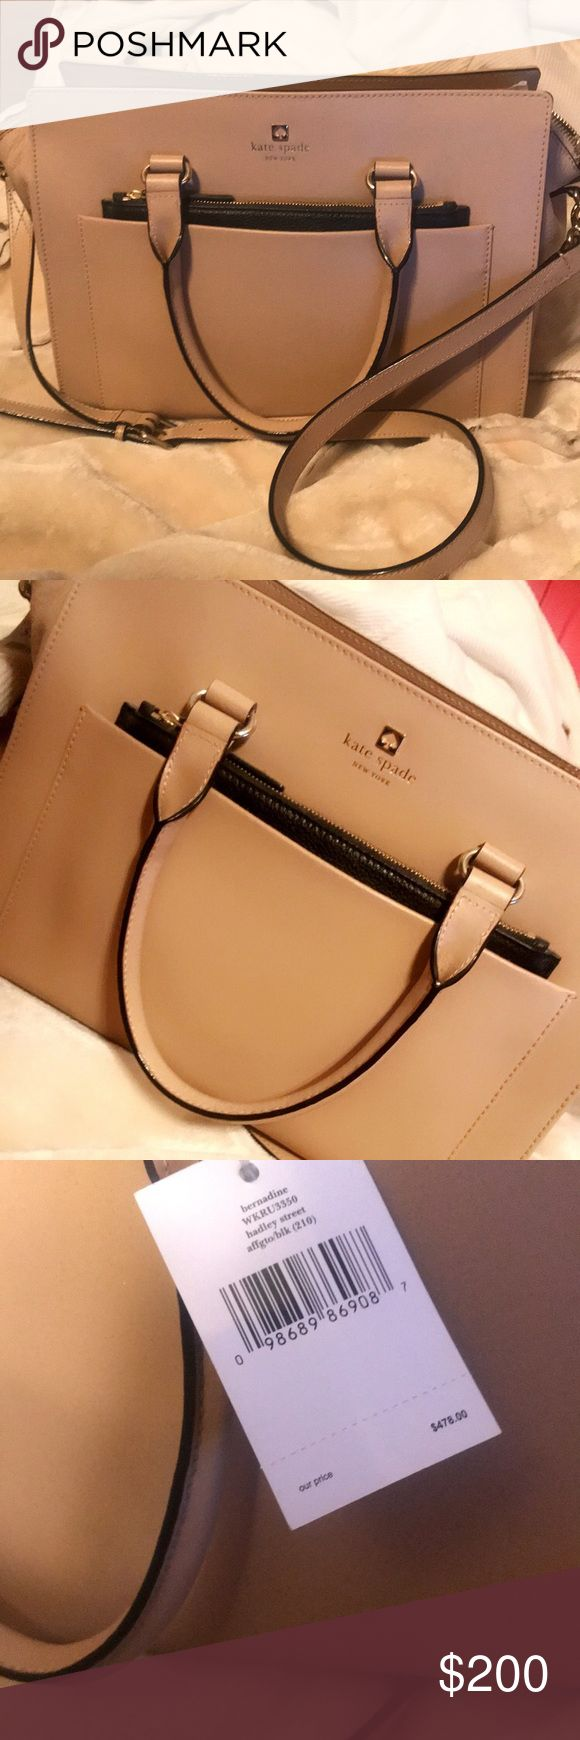 Kate Spade nude purse (never been used) Beautiful Kate Spade nude purse, in tact never been used. Perfect to match with any outfit ✨ kate spade Bags Shoulder Bags